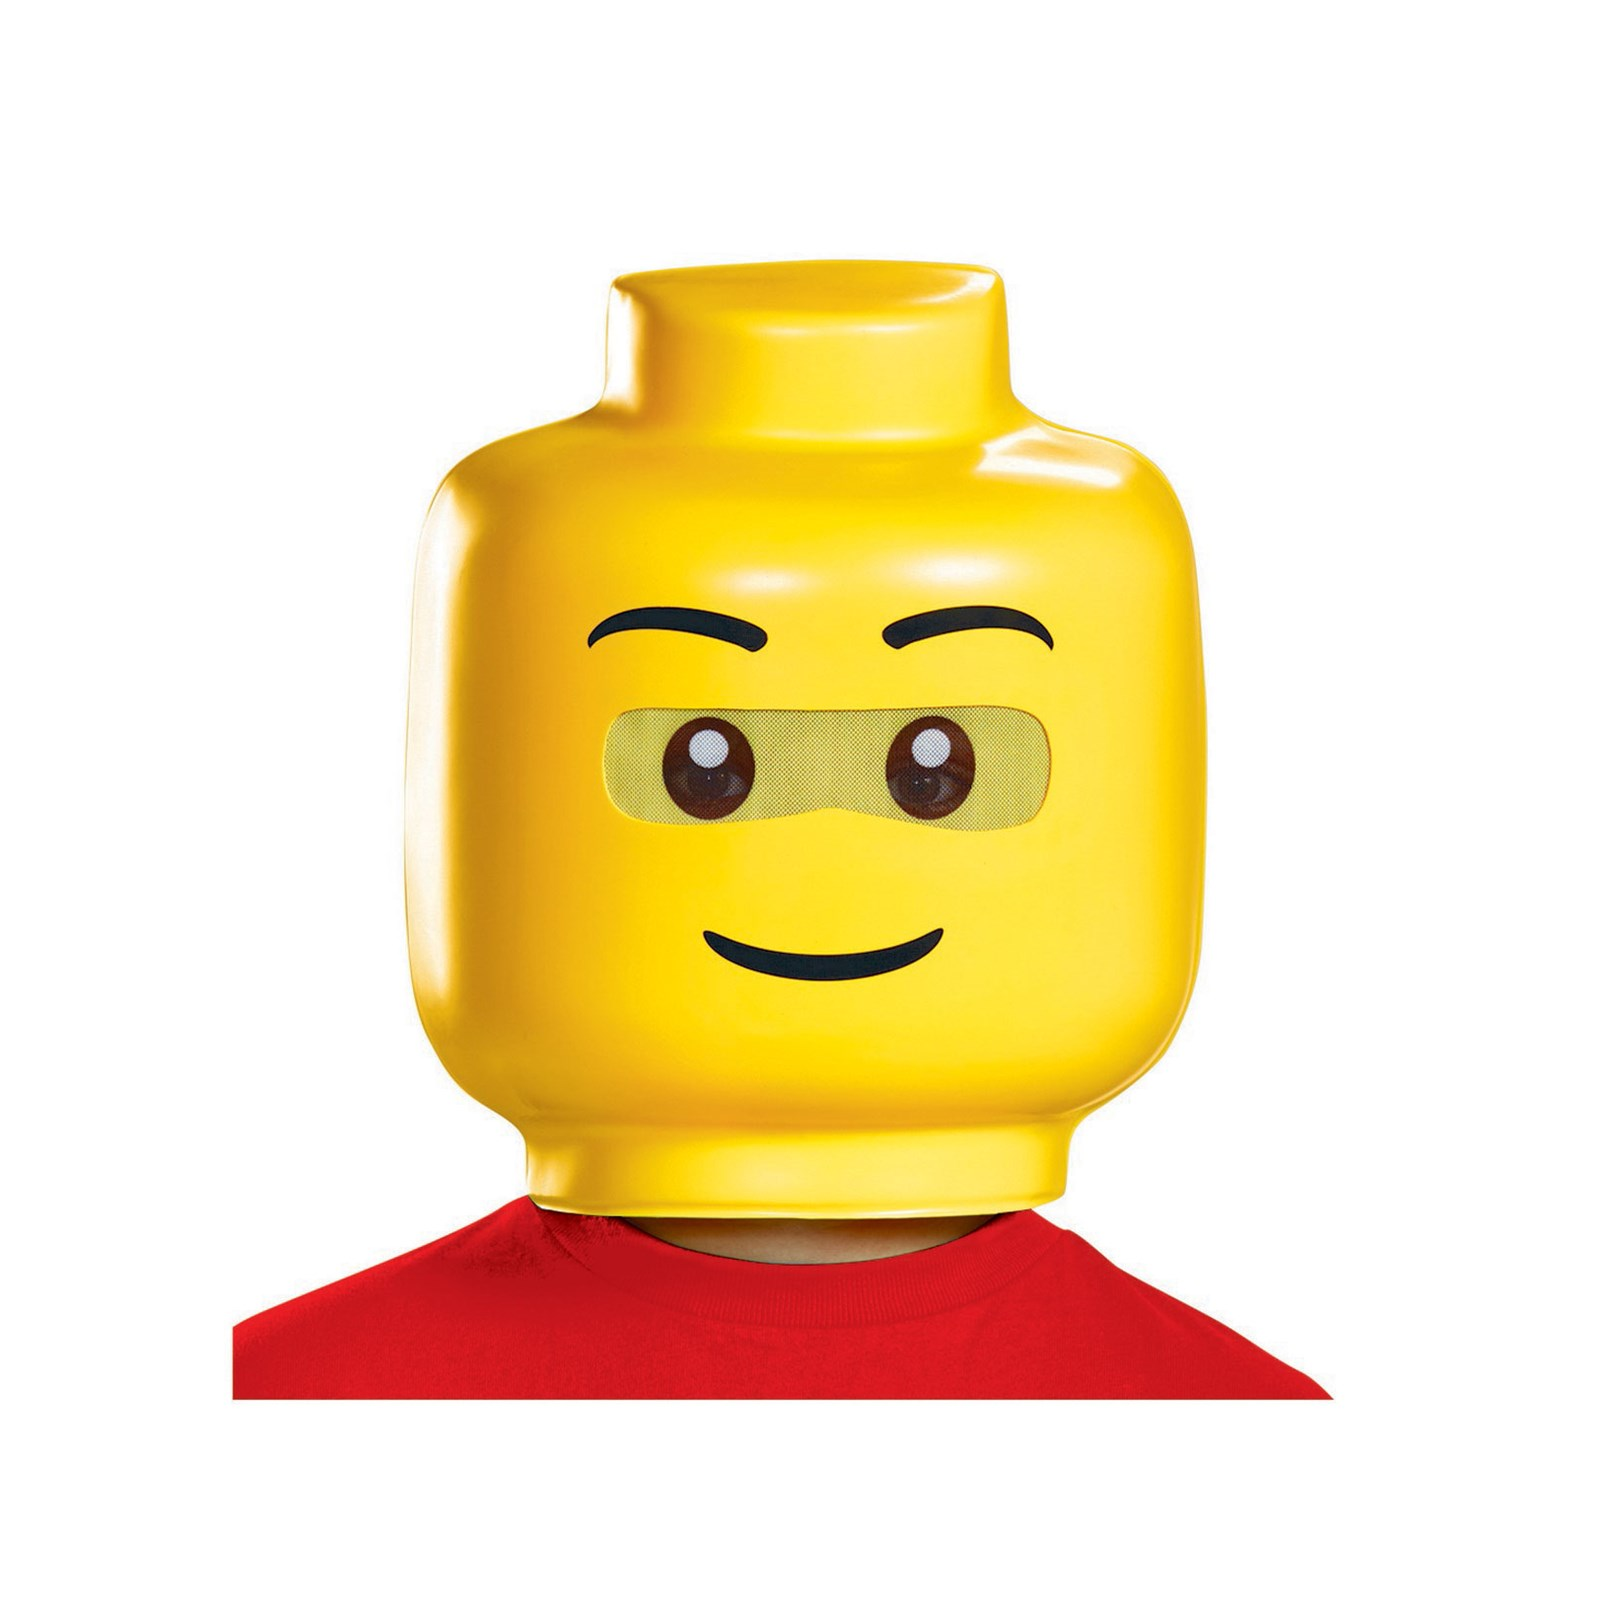 Lego Iconic Lego Guy Child Mask